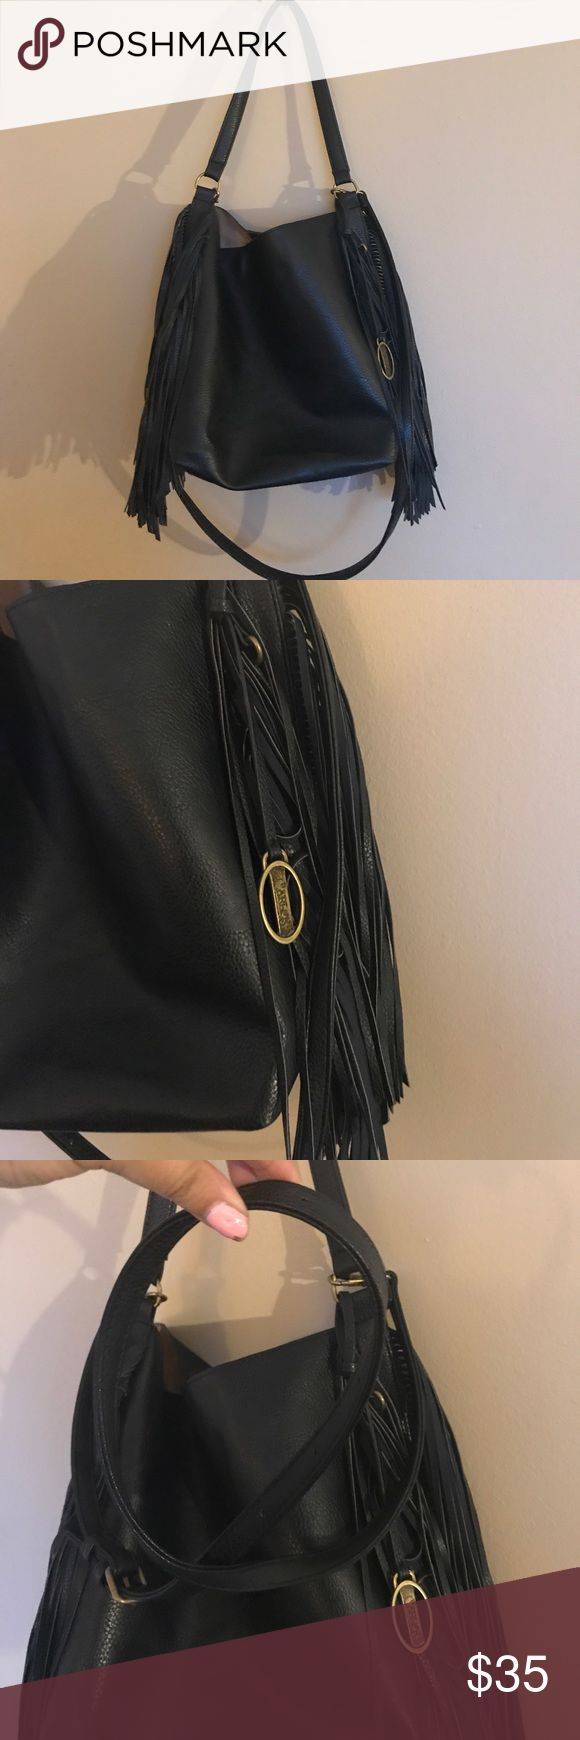 Carlos Santana faux leather black fringe purse bag Carlos Santana faux leather black fringe purse bag. Excellent condition cross body, satchel handbag from Carlos by Carlos Santana. Brassy hardware with black photo leather detail. Lining in outer is 100% polyester. Very versatile bag can be worn over the shoulder or as cross body. Strap is detachable. Perfect for festival, vacation or upcoming fall bag. I love reasonable offers, bundle and save! I ship same or next day from Ohio! 🖤💌 Carlos…